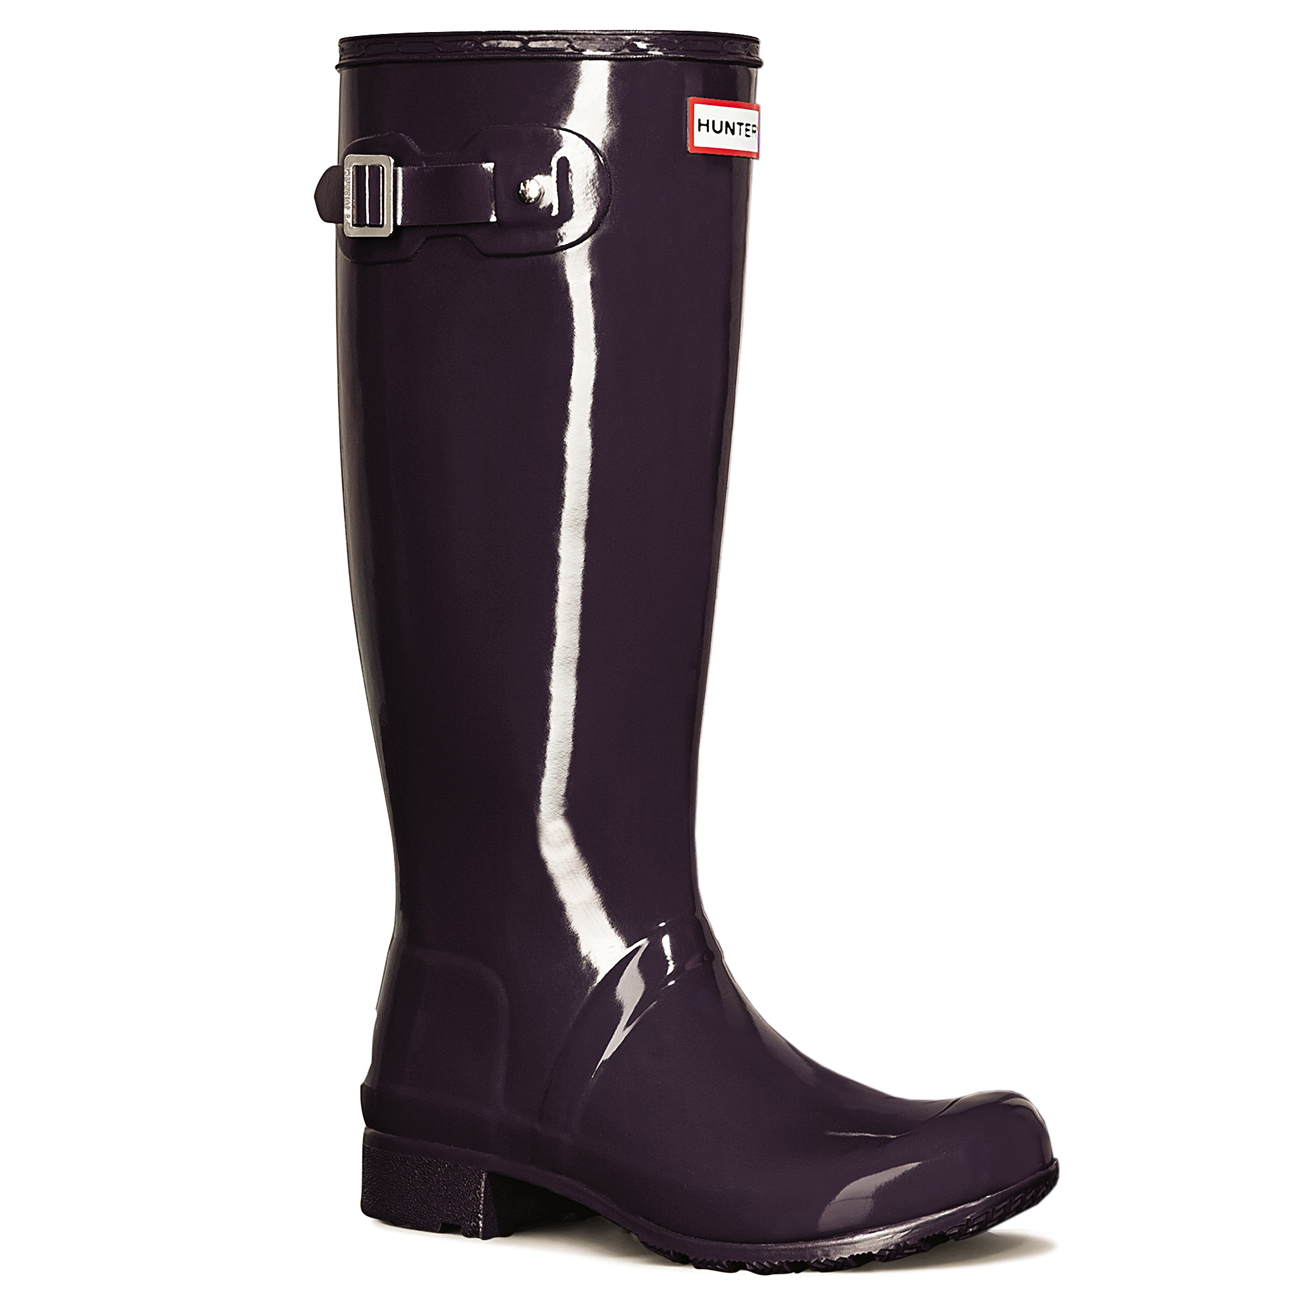 Damas Hunter Original Tour Tour Tour Brillo Knee High Festival Wellingtons botas Todas Las Tallas b8419d